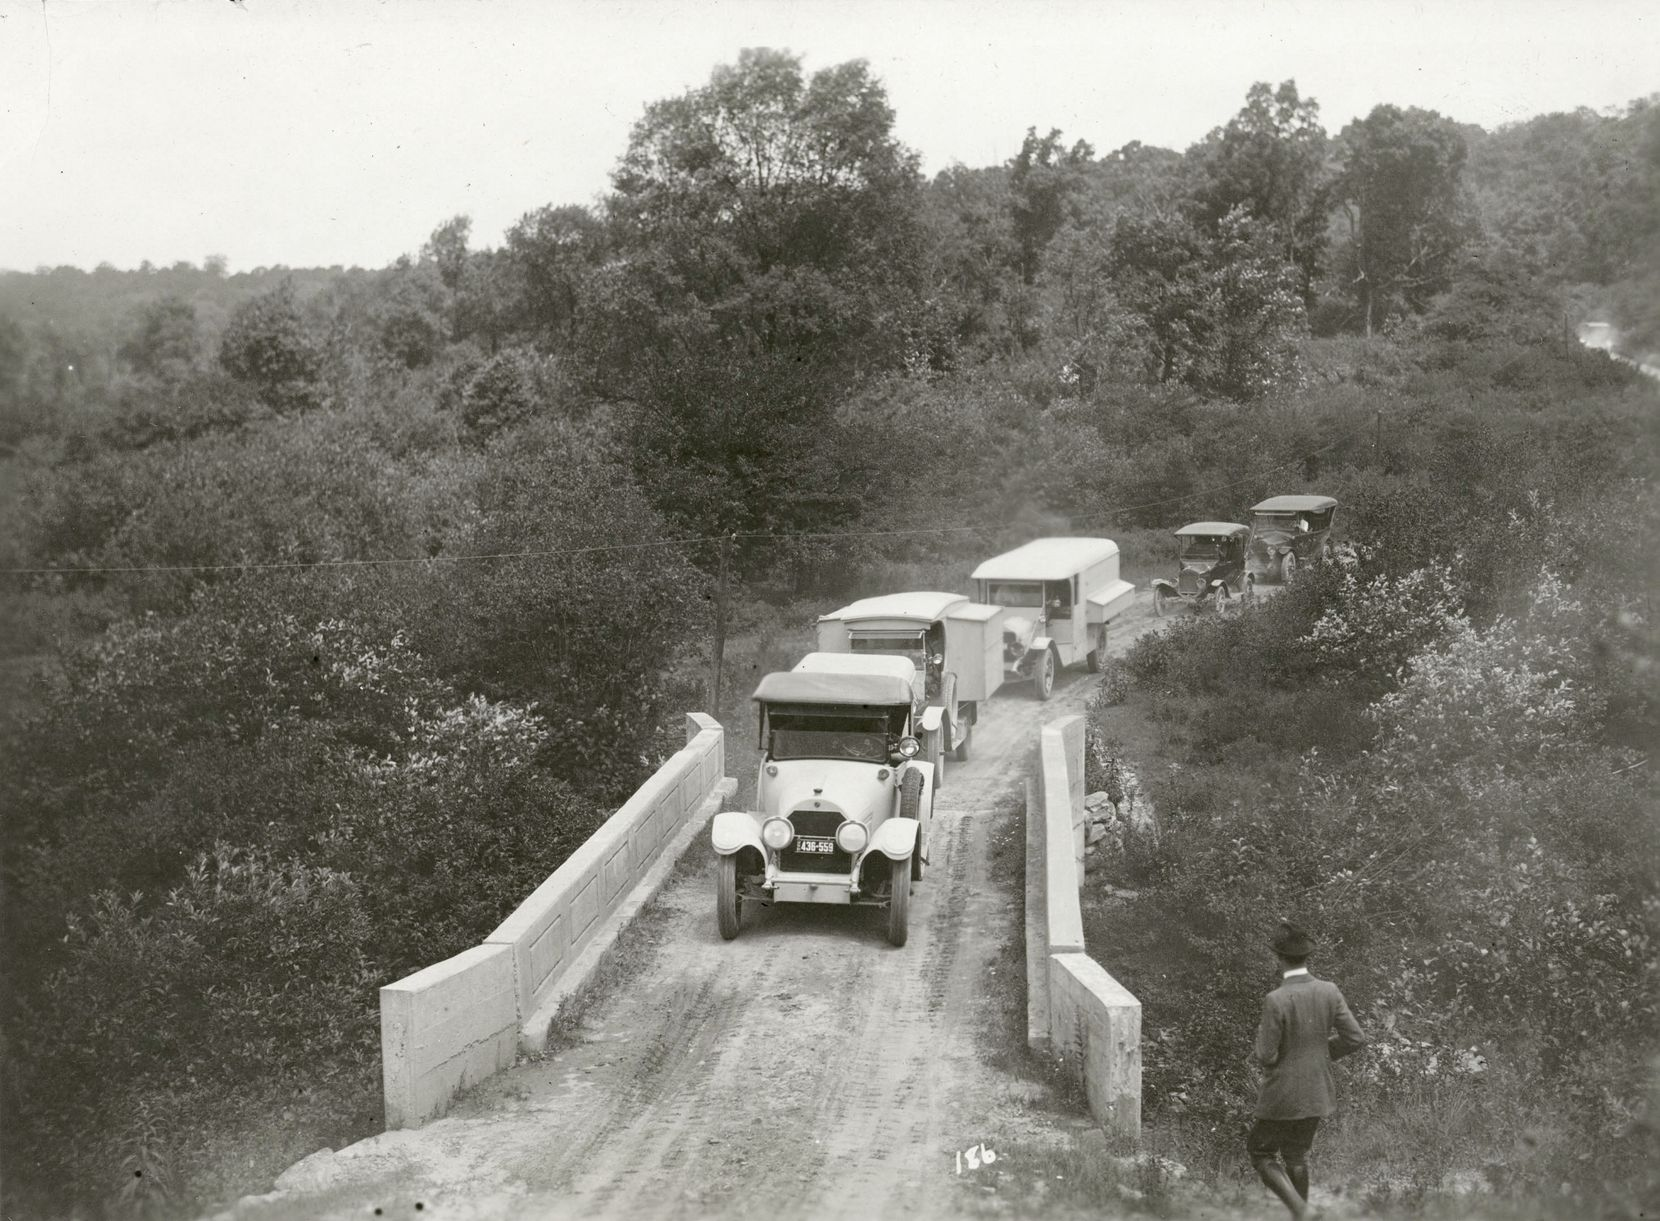 The caravan crosses a bridge while carrying Henry Ford, Thomas Edison and others on one of their road trips.